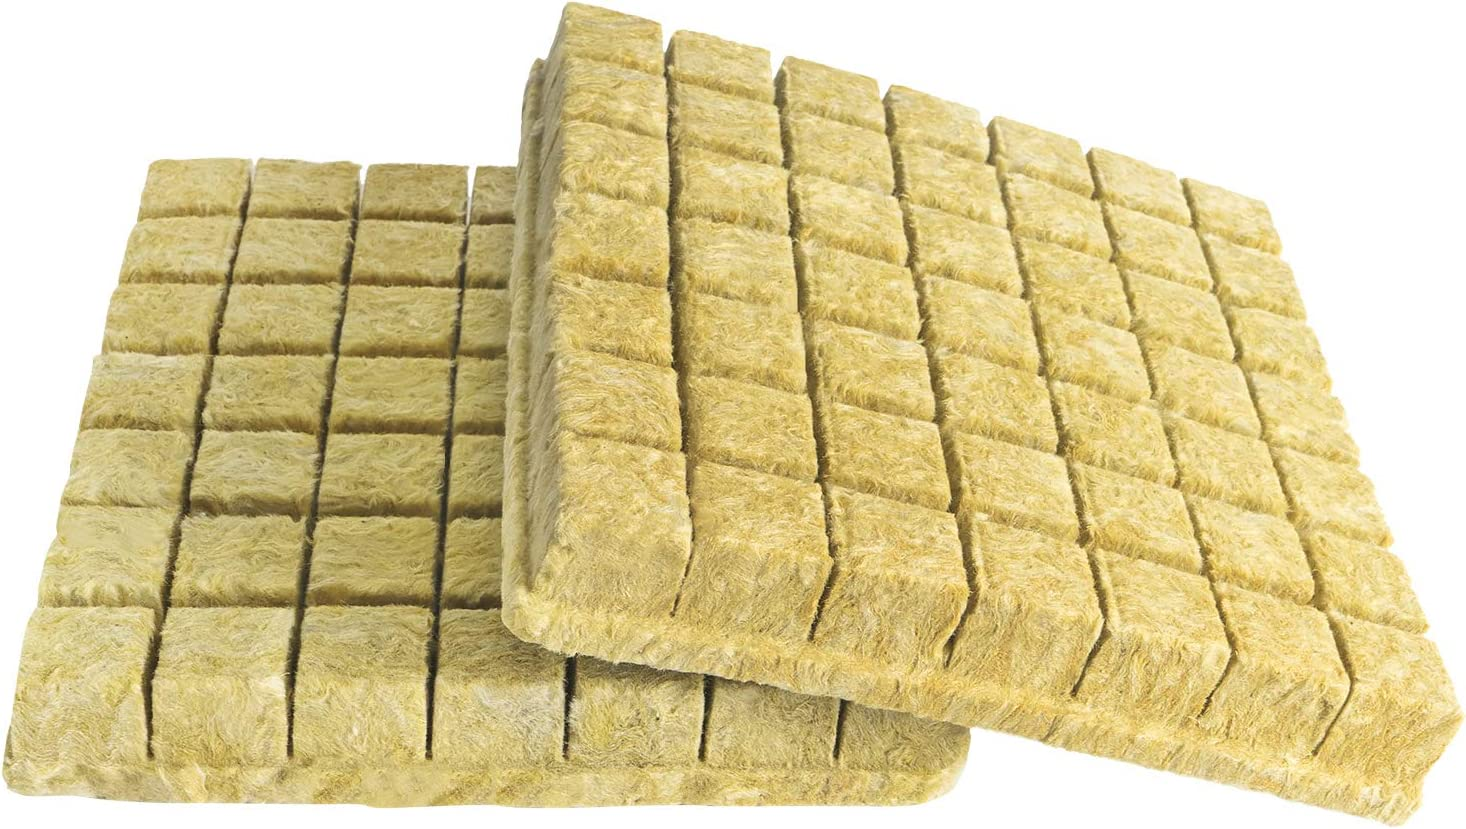 CastleGreens Rockwool Grow Cubes, 1.5inches Starter Plugs for Plant Growing, Hydroponic Grow Media(2 Sheets, 98 Plugs Total)